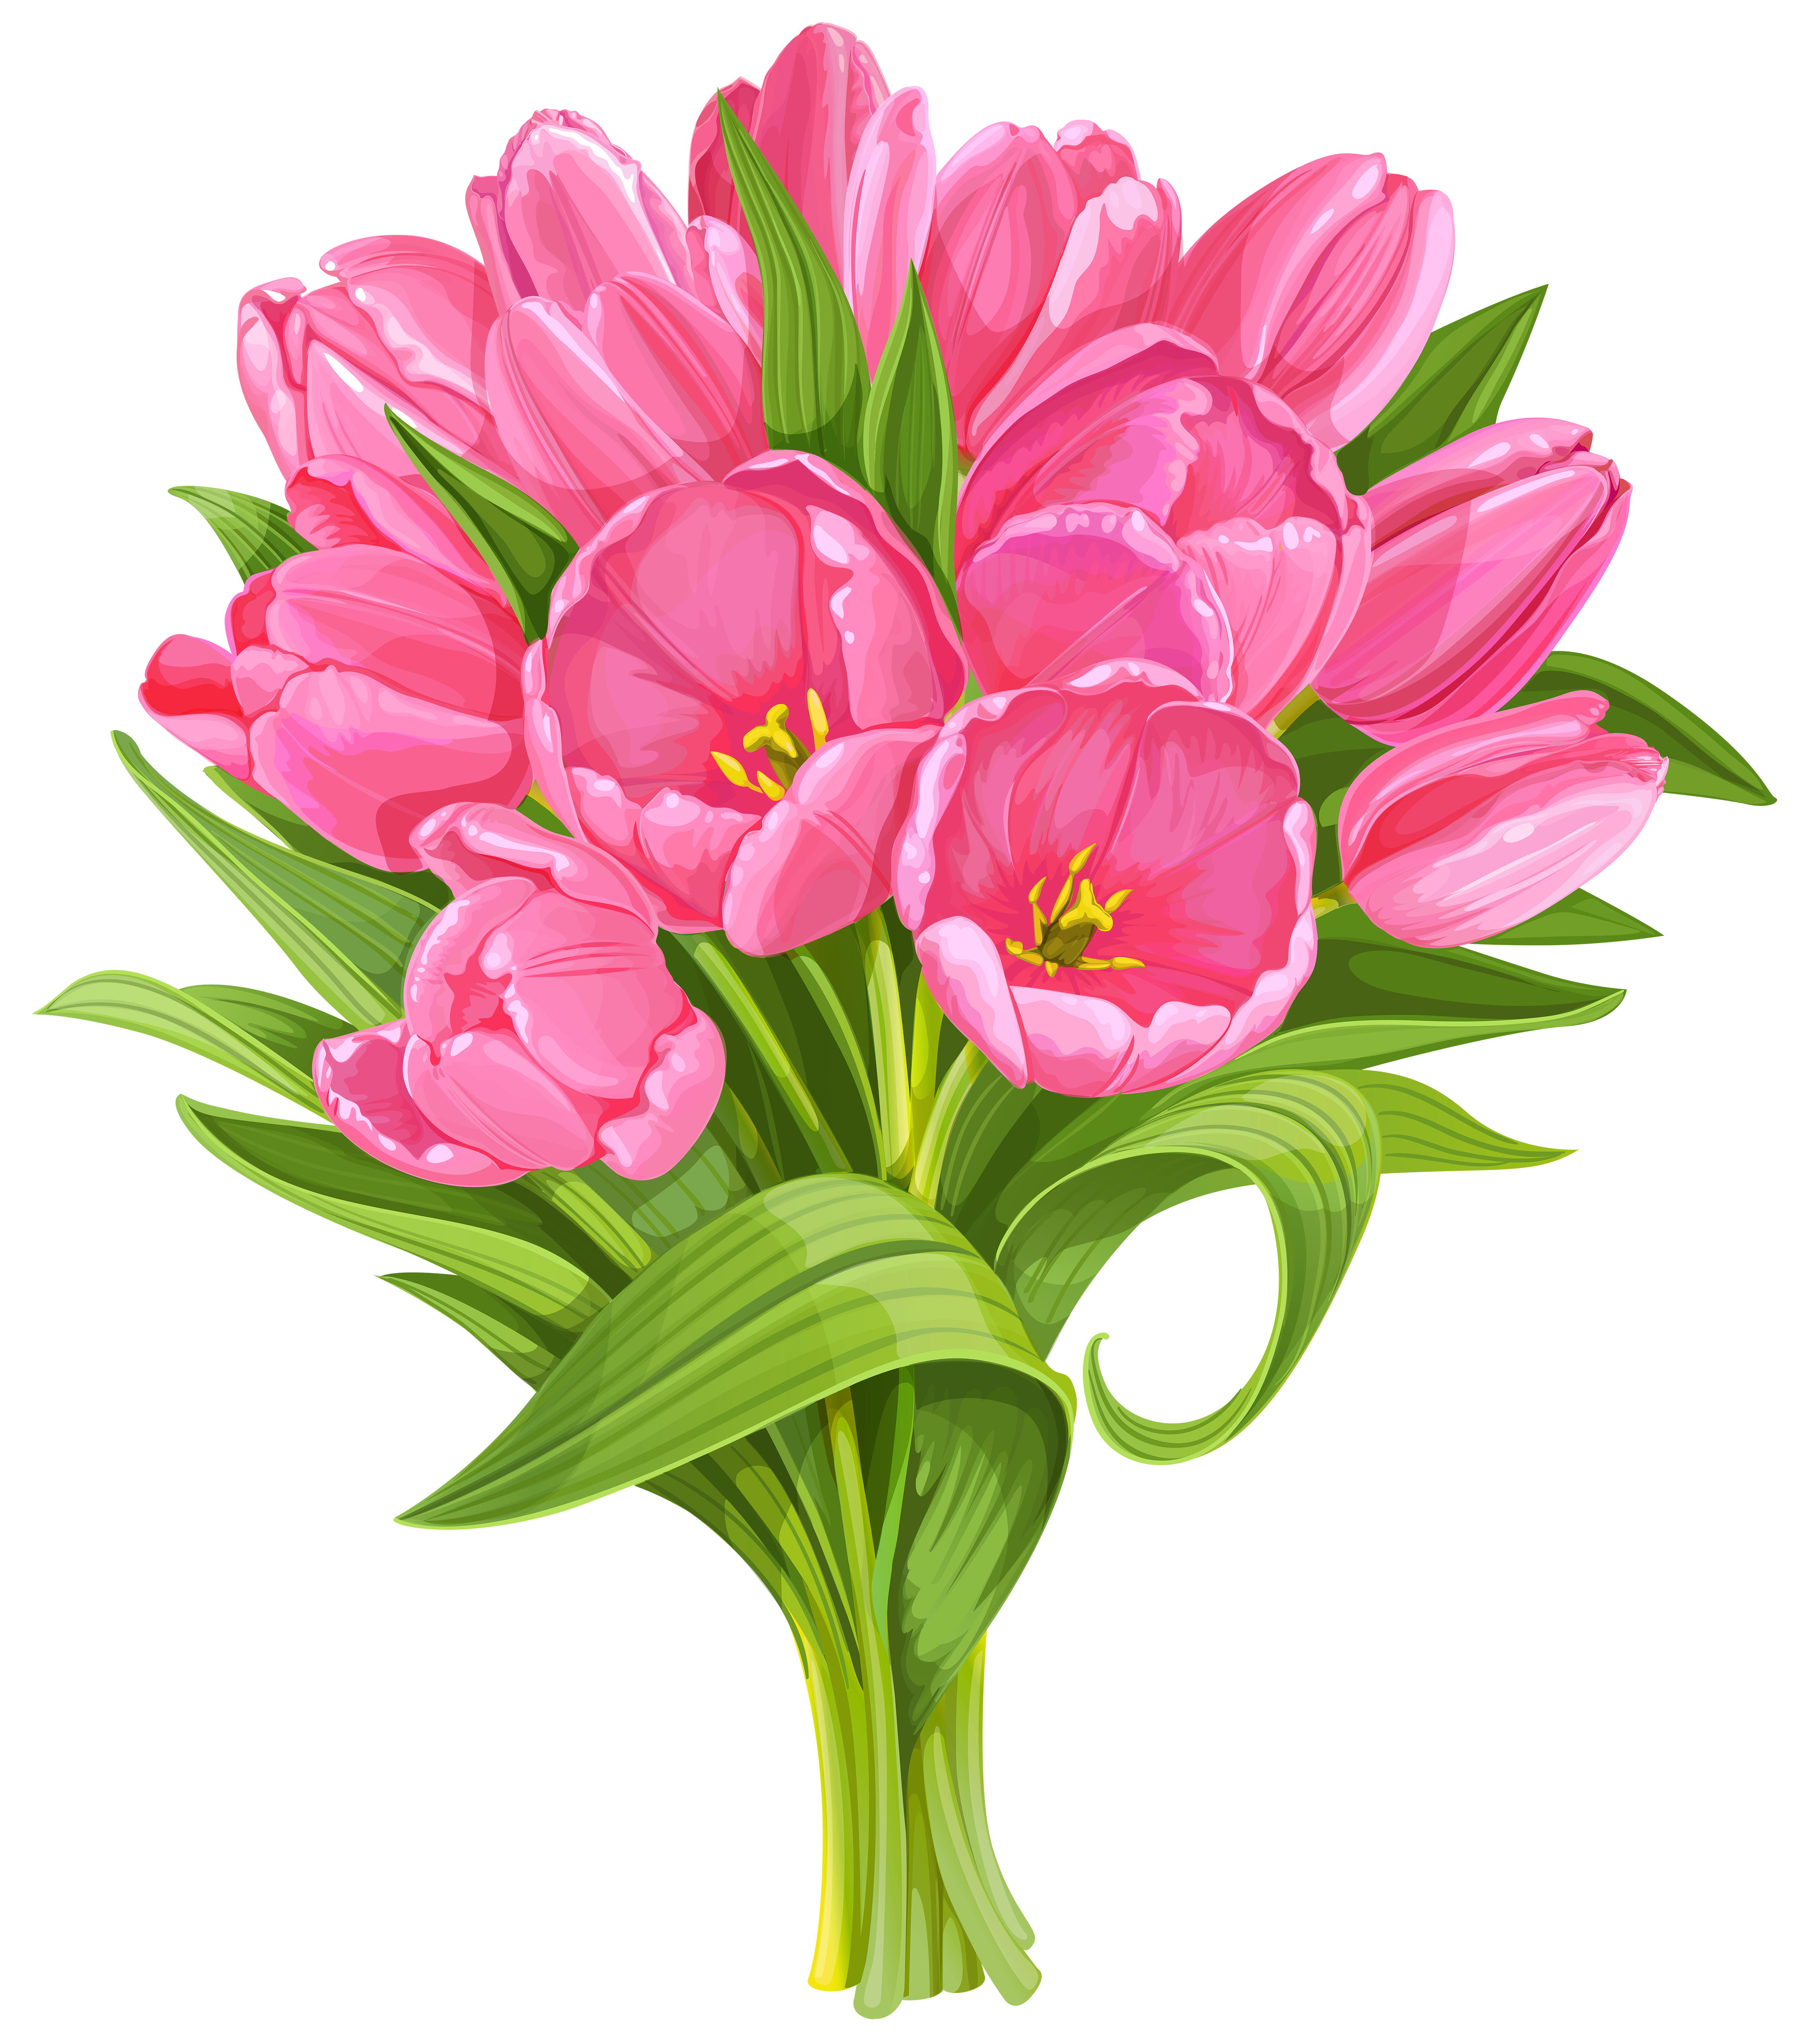 Clipart tulip flower vector free tulip clipart no background #8 | flower cliparts | Pinterest ... vector free